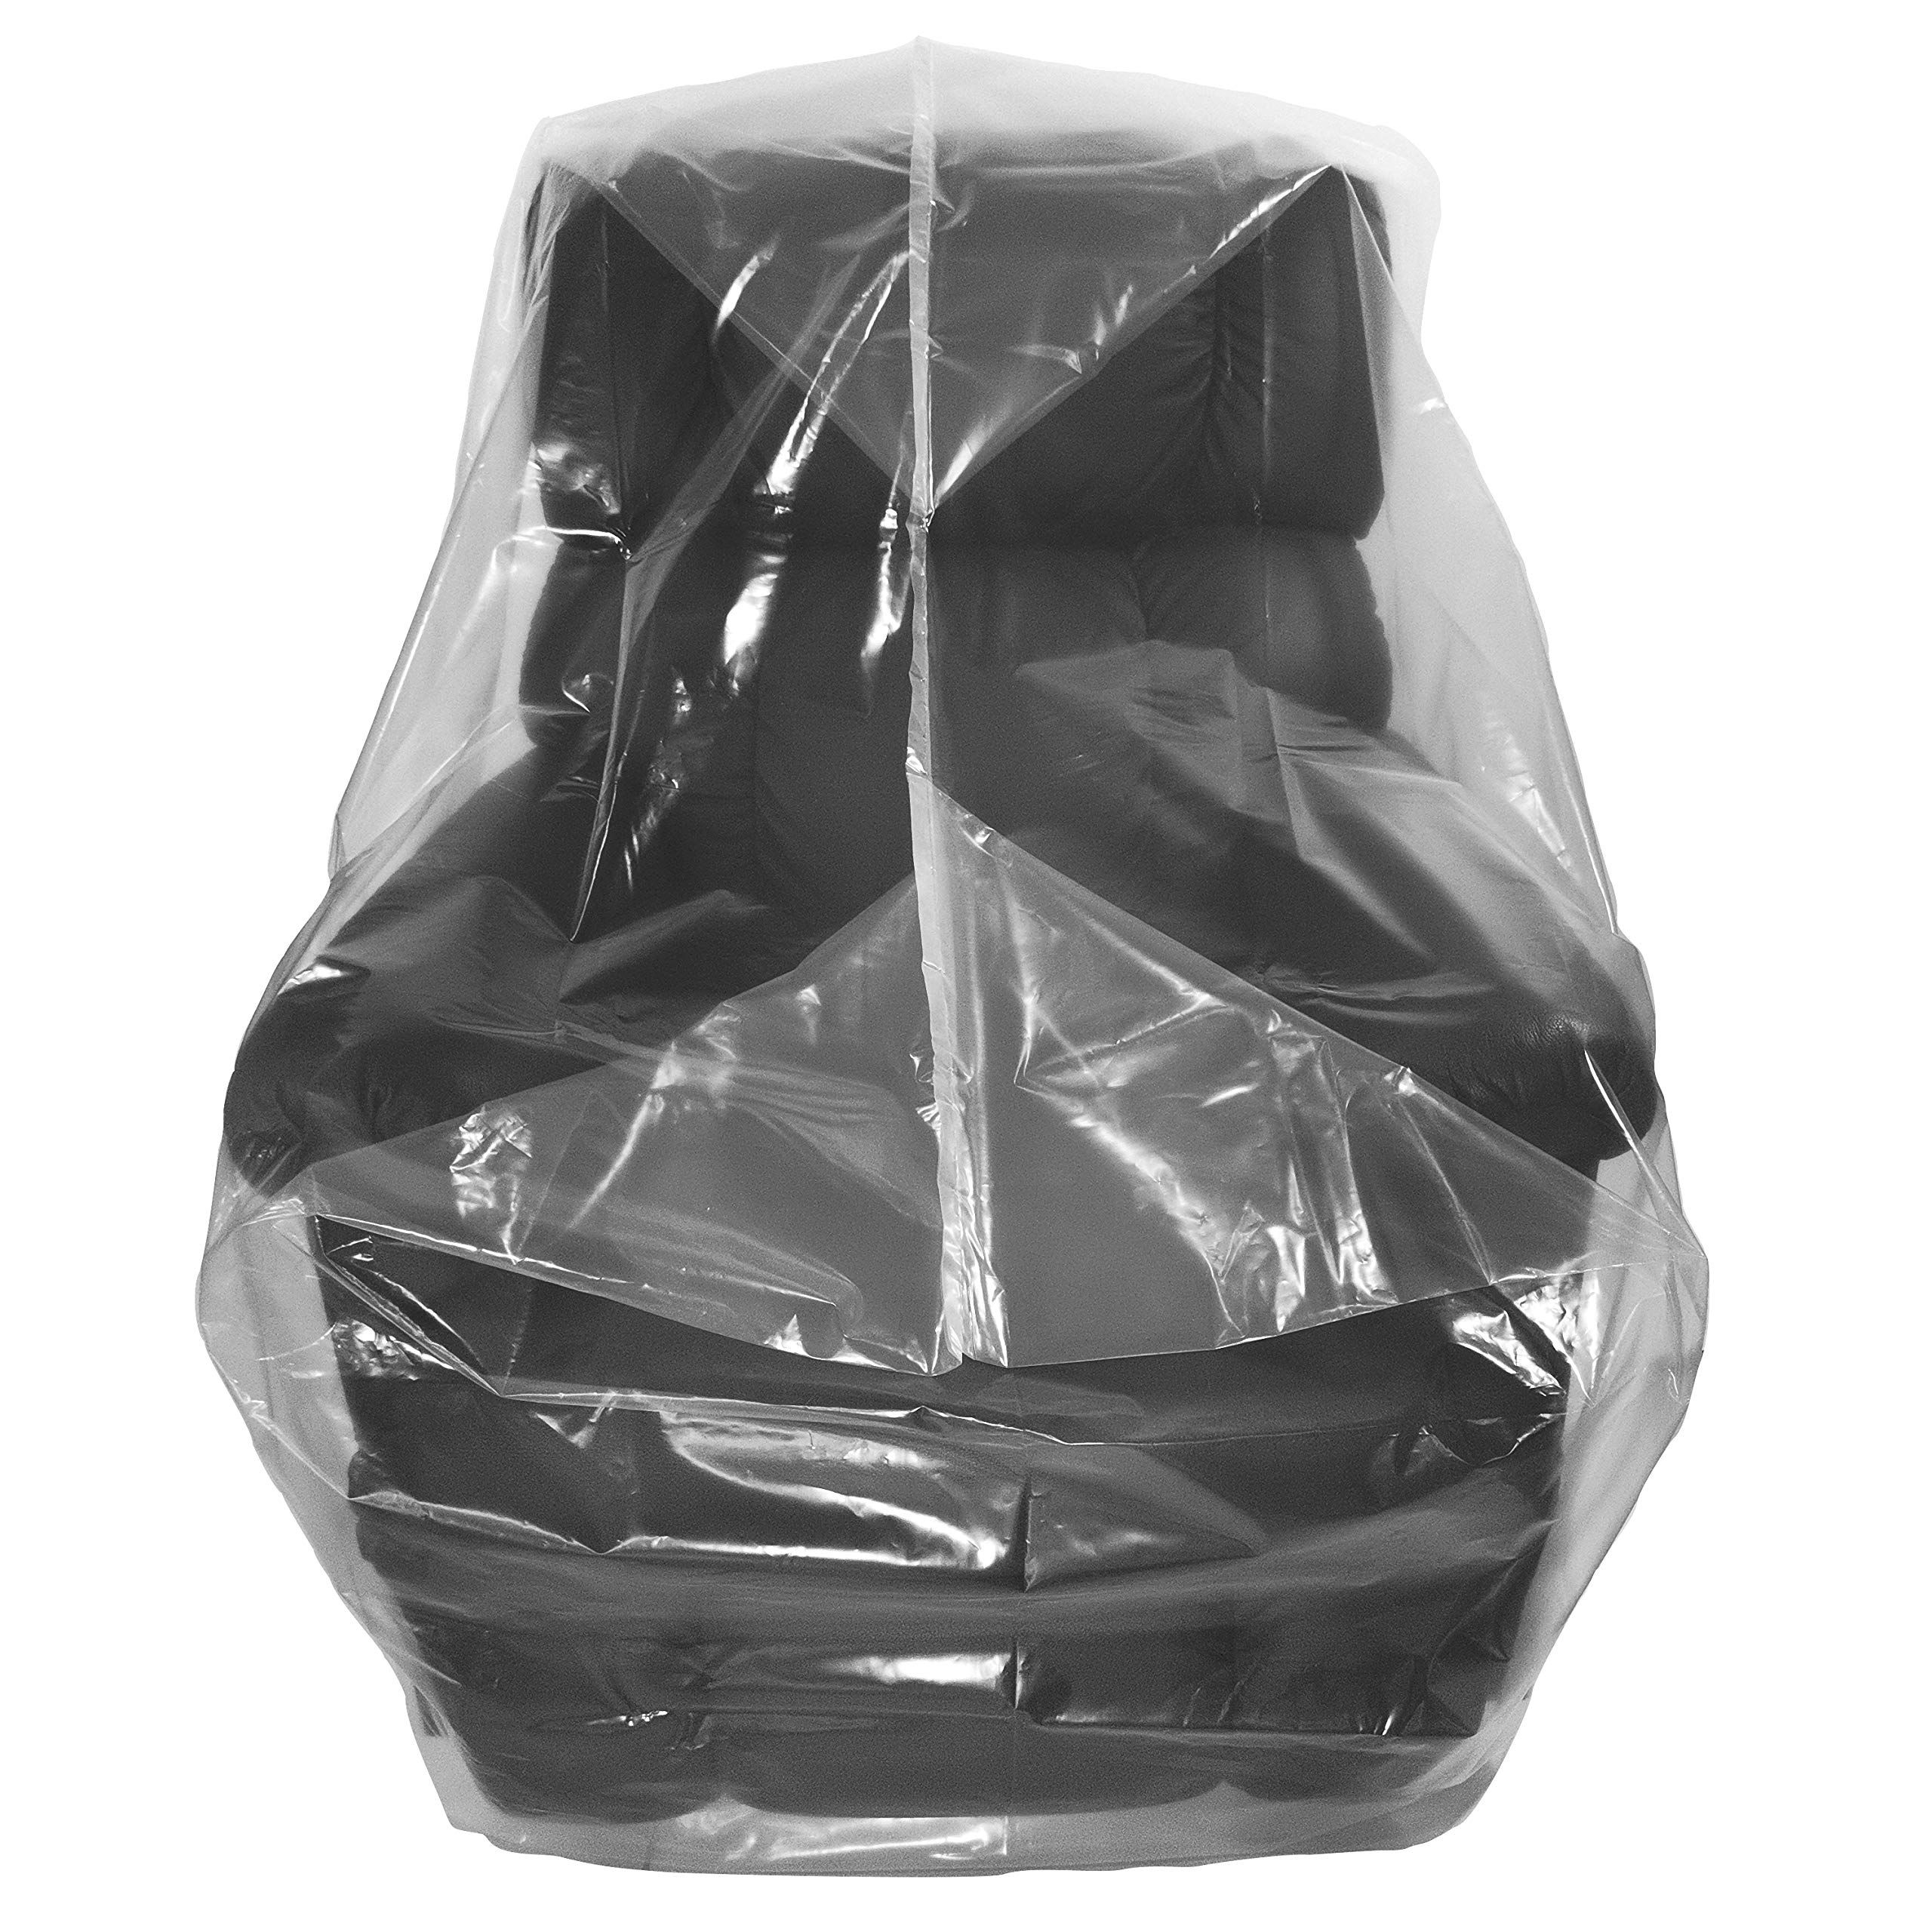 Wowfit Furniture Cover A Dust Proof Moving Bag For Chairs Recliners Moving Boxes A Clear Odorless Plastic Bag Furniture Covers Chair Cover Moving Boxes